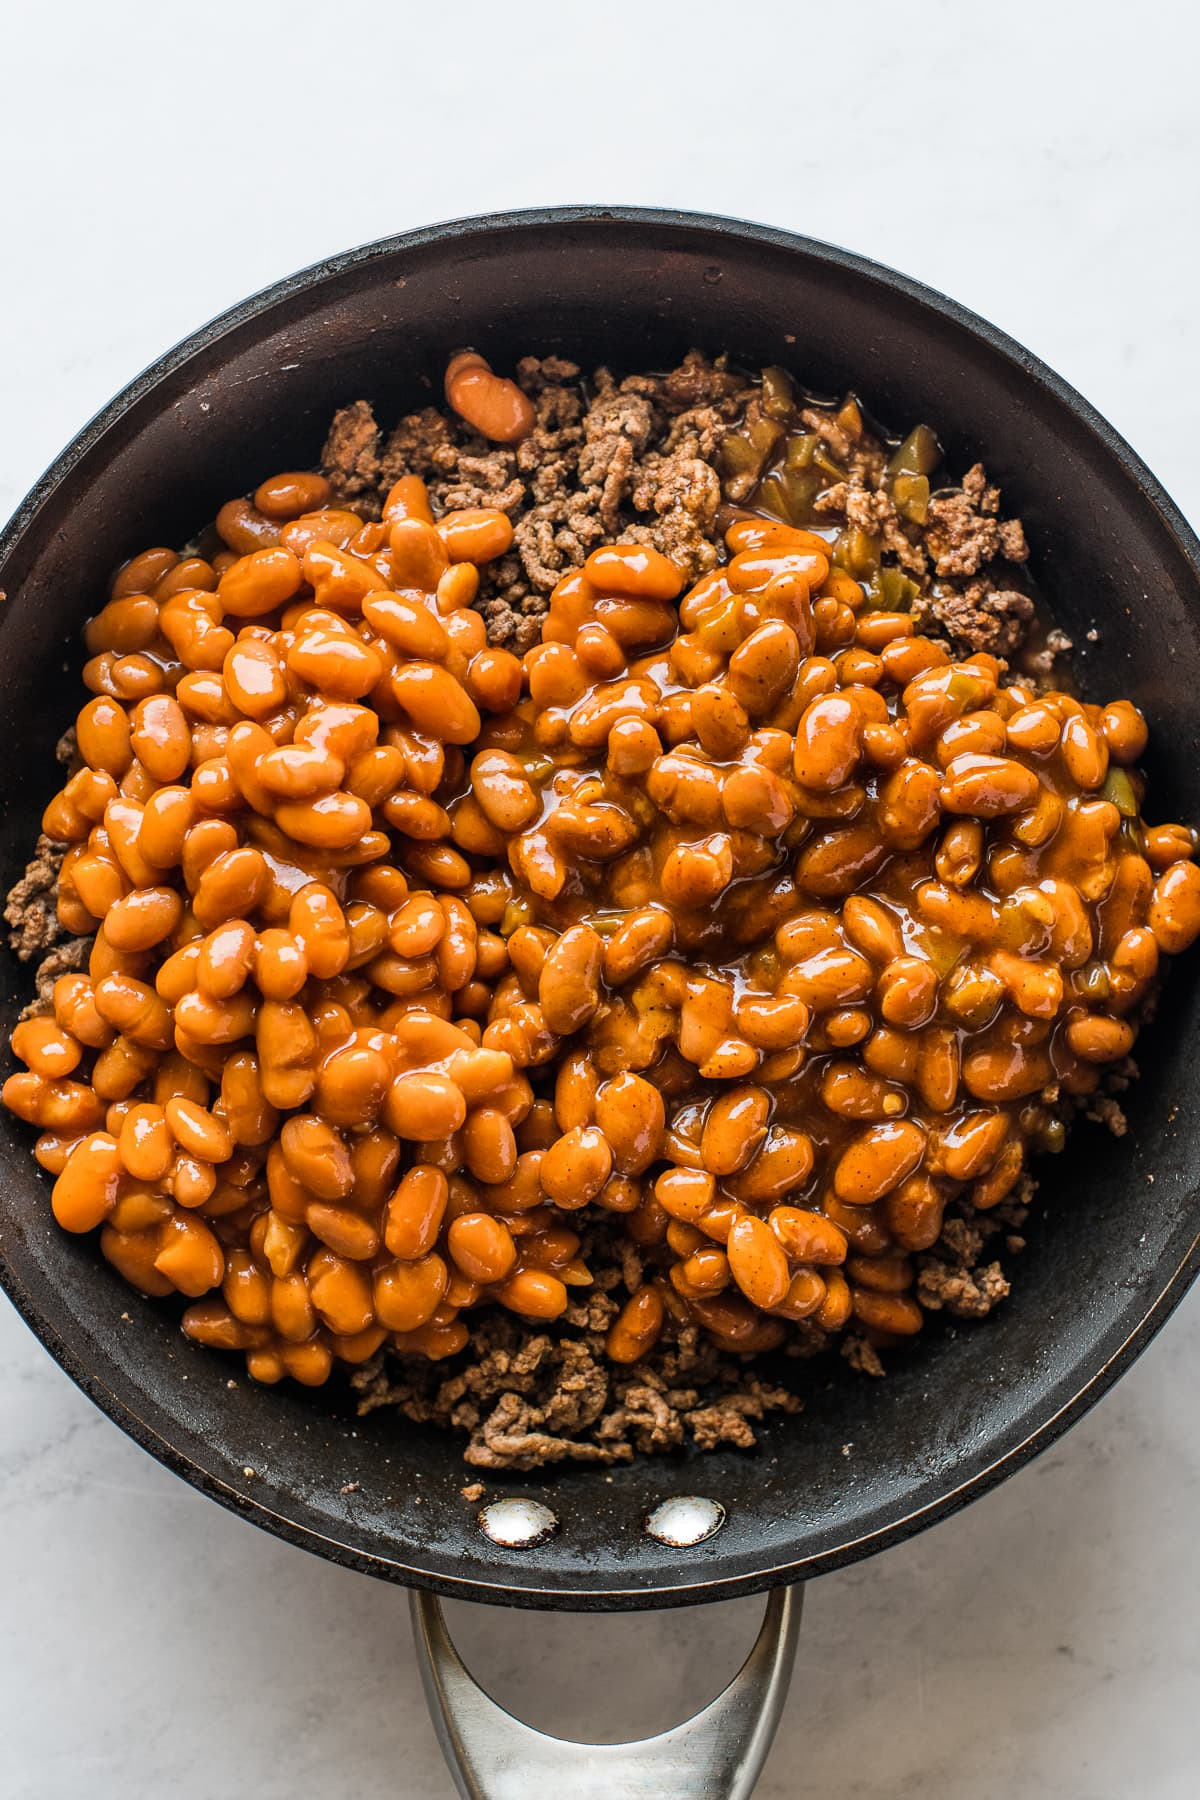 A skillet of beans and ground beef for walking tacos.